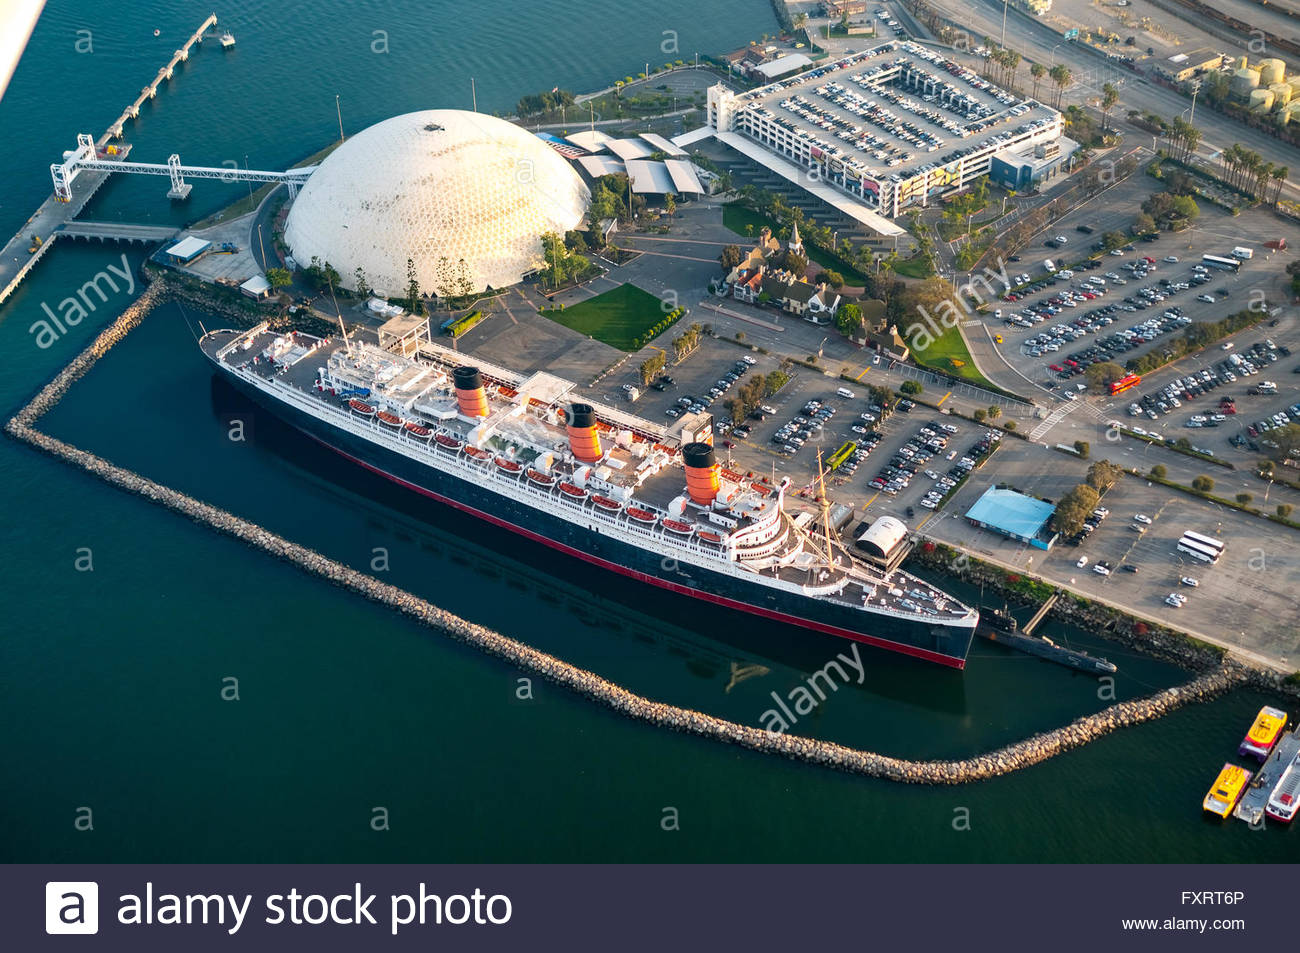 Richard J. Riordan Central Library Los Angeles, Aerial view, RMS Queen Mary, Ocean Liner, Queen Mary Hotel in Long ...